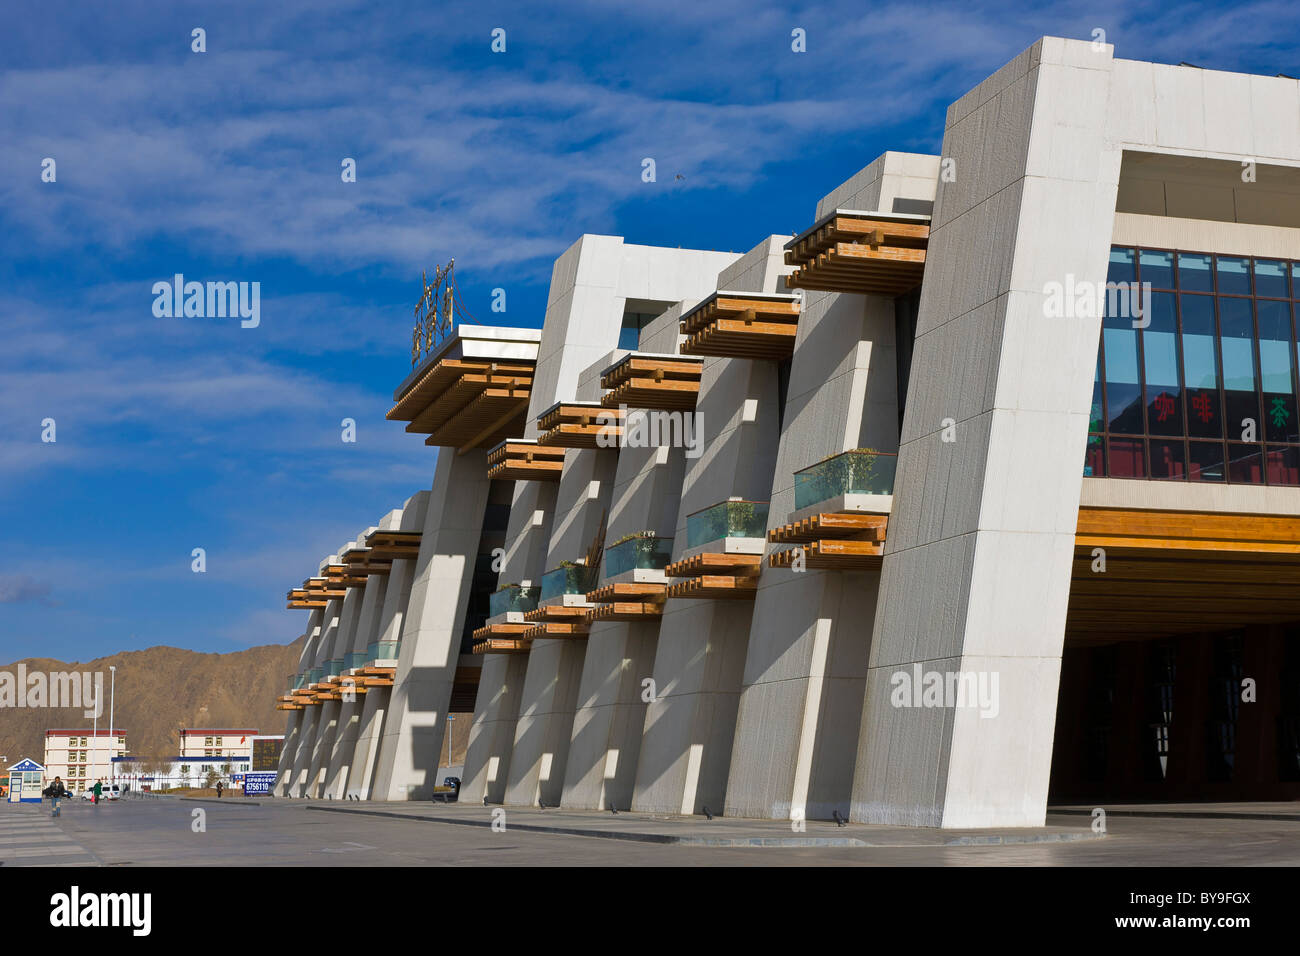 Exterior of the railway station Lhasa Tibet. JMH4625 Stock Photo